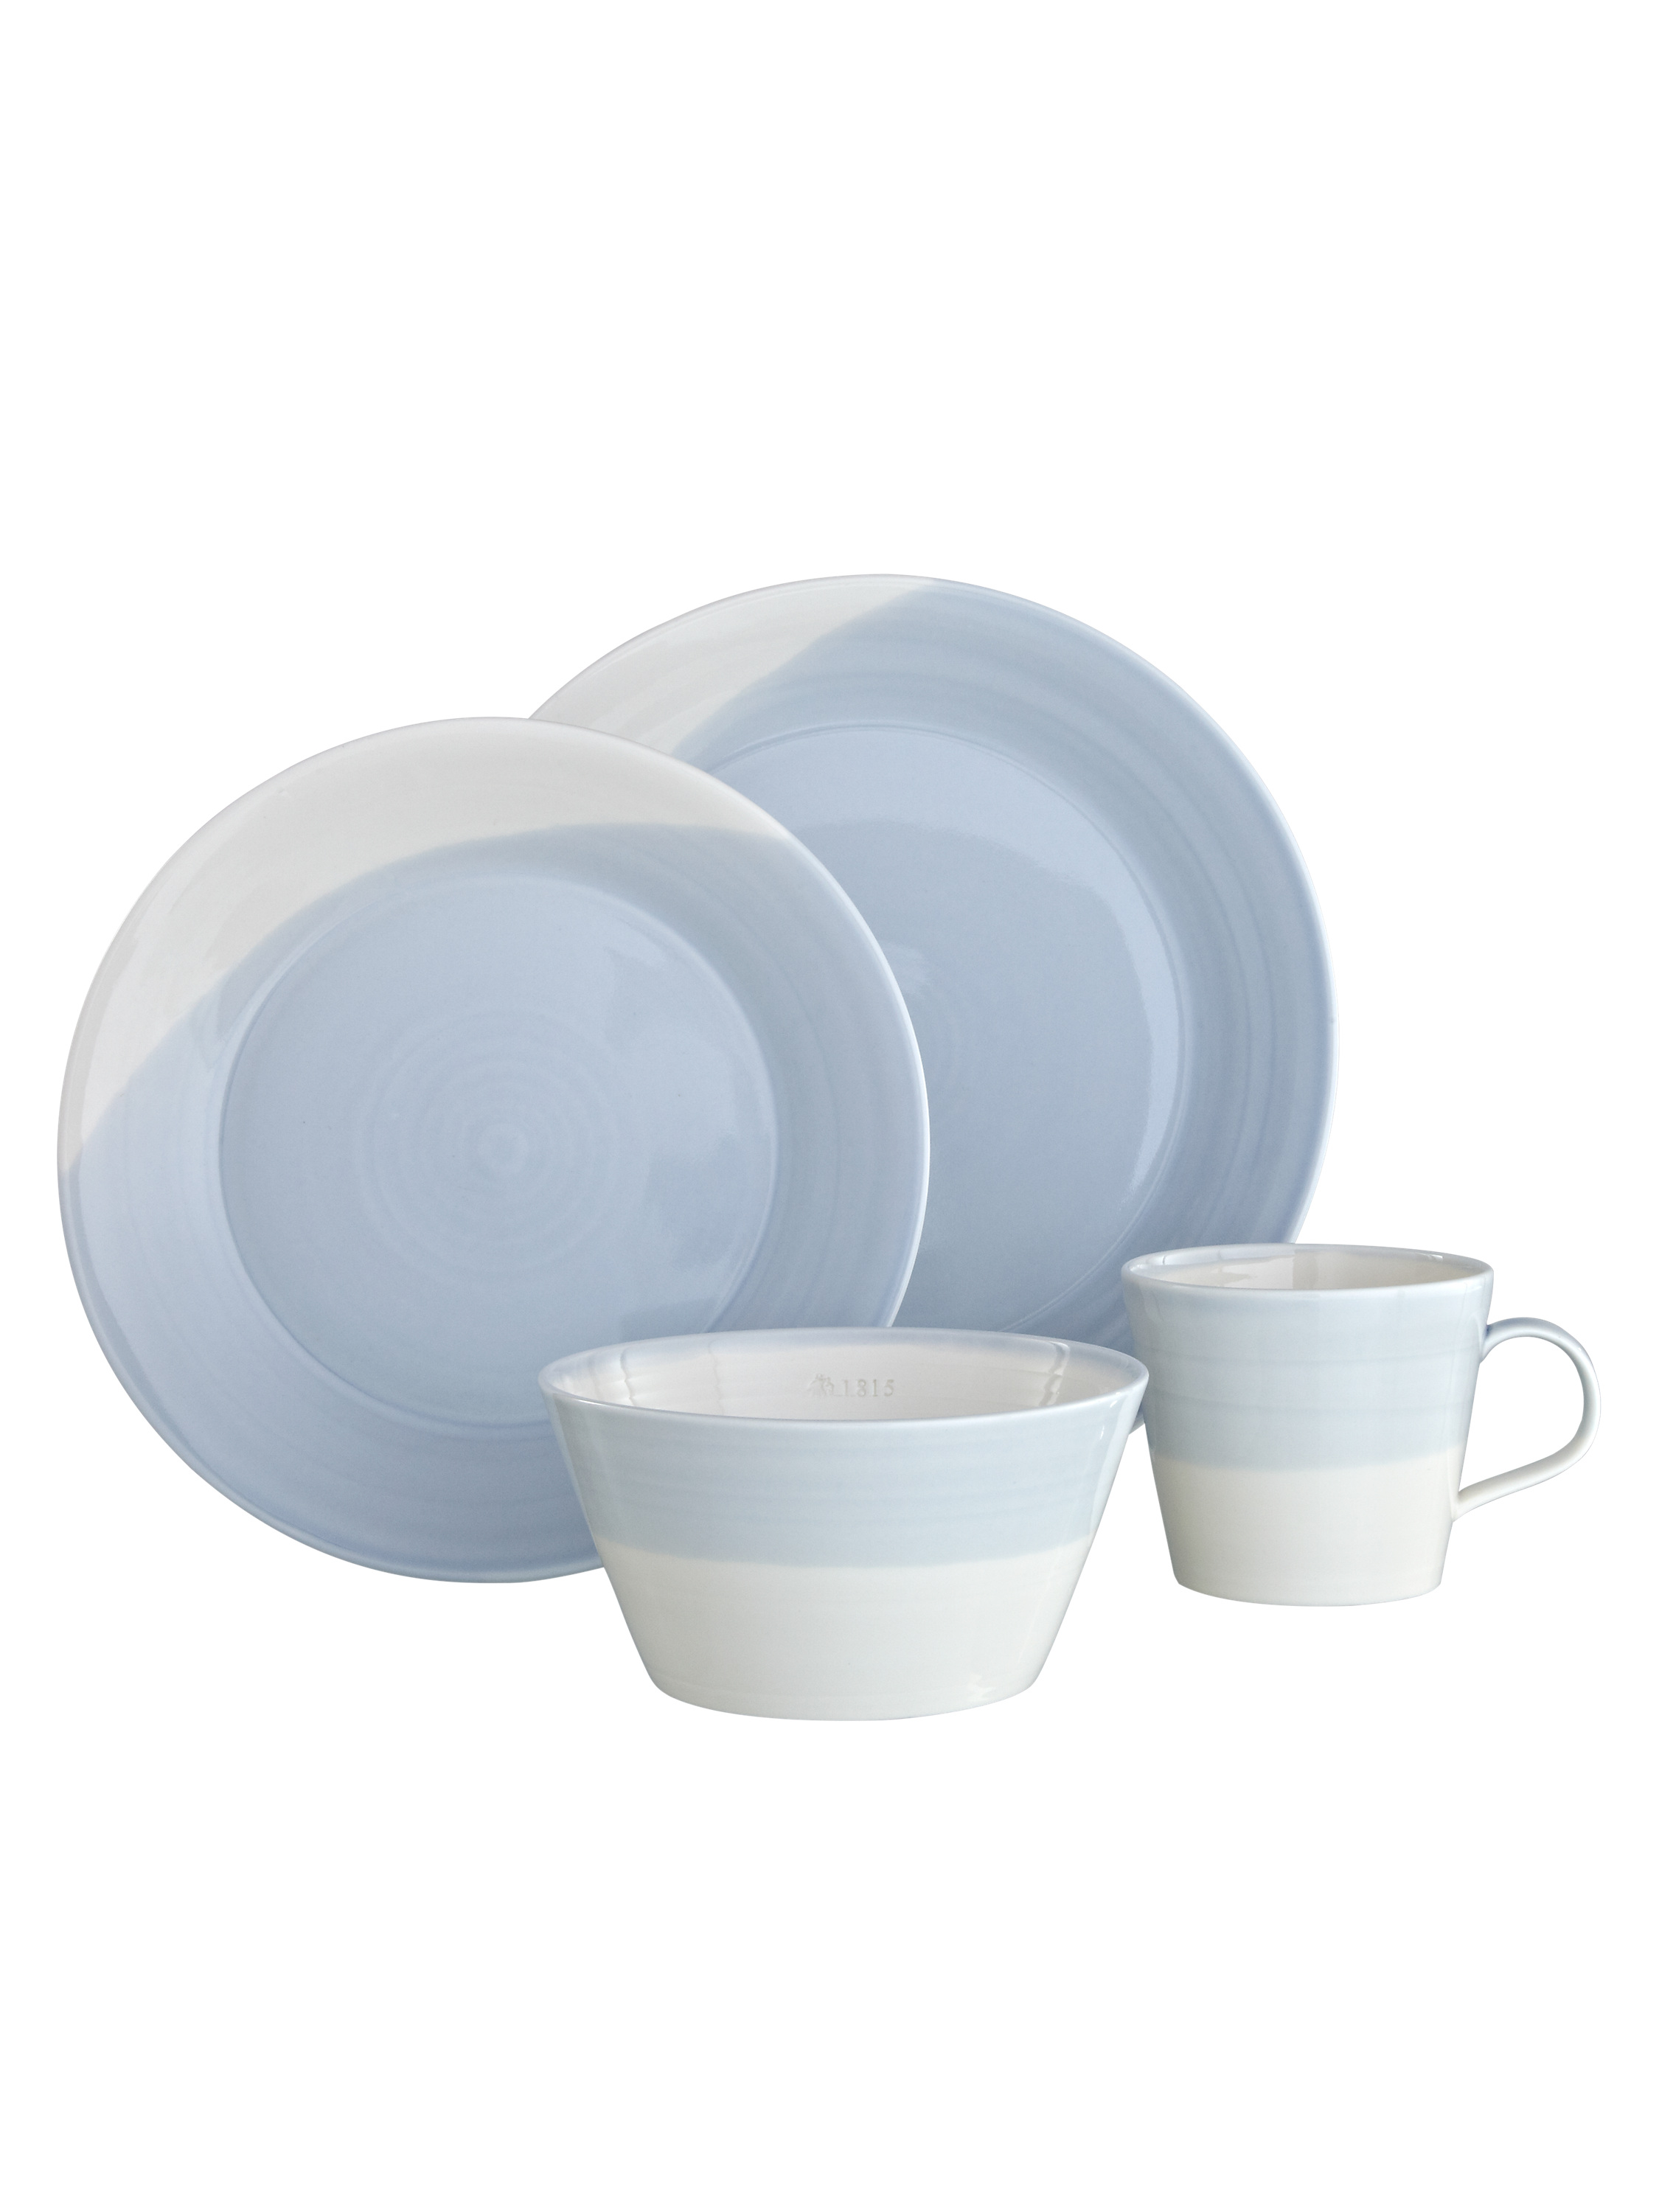 25% off selected Royal Doulton